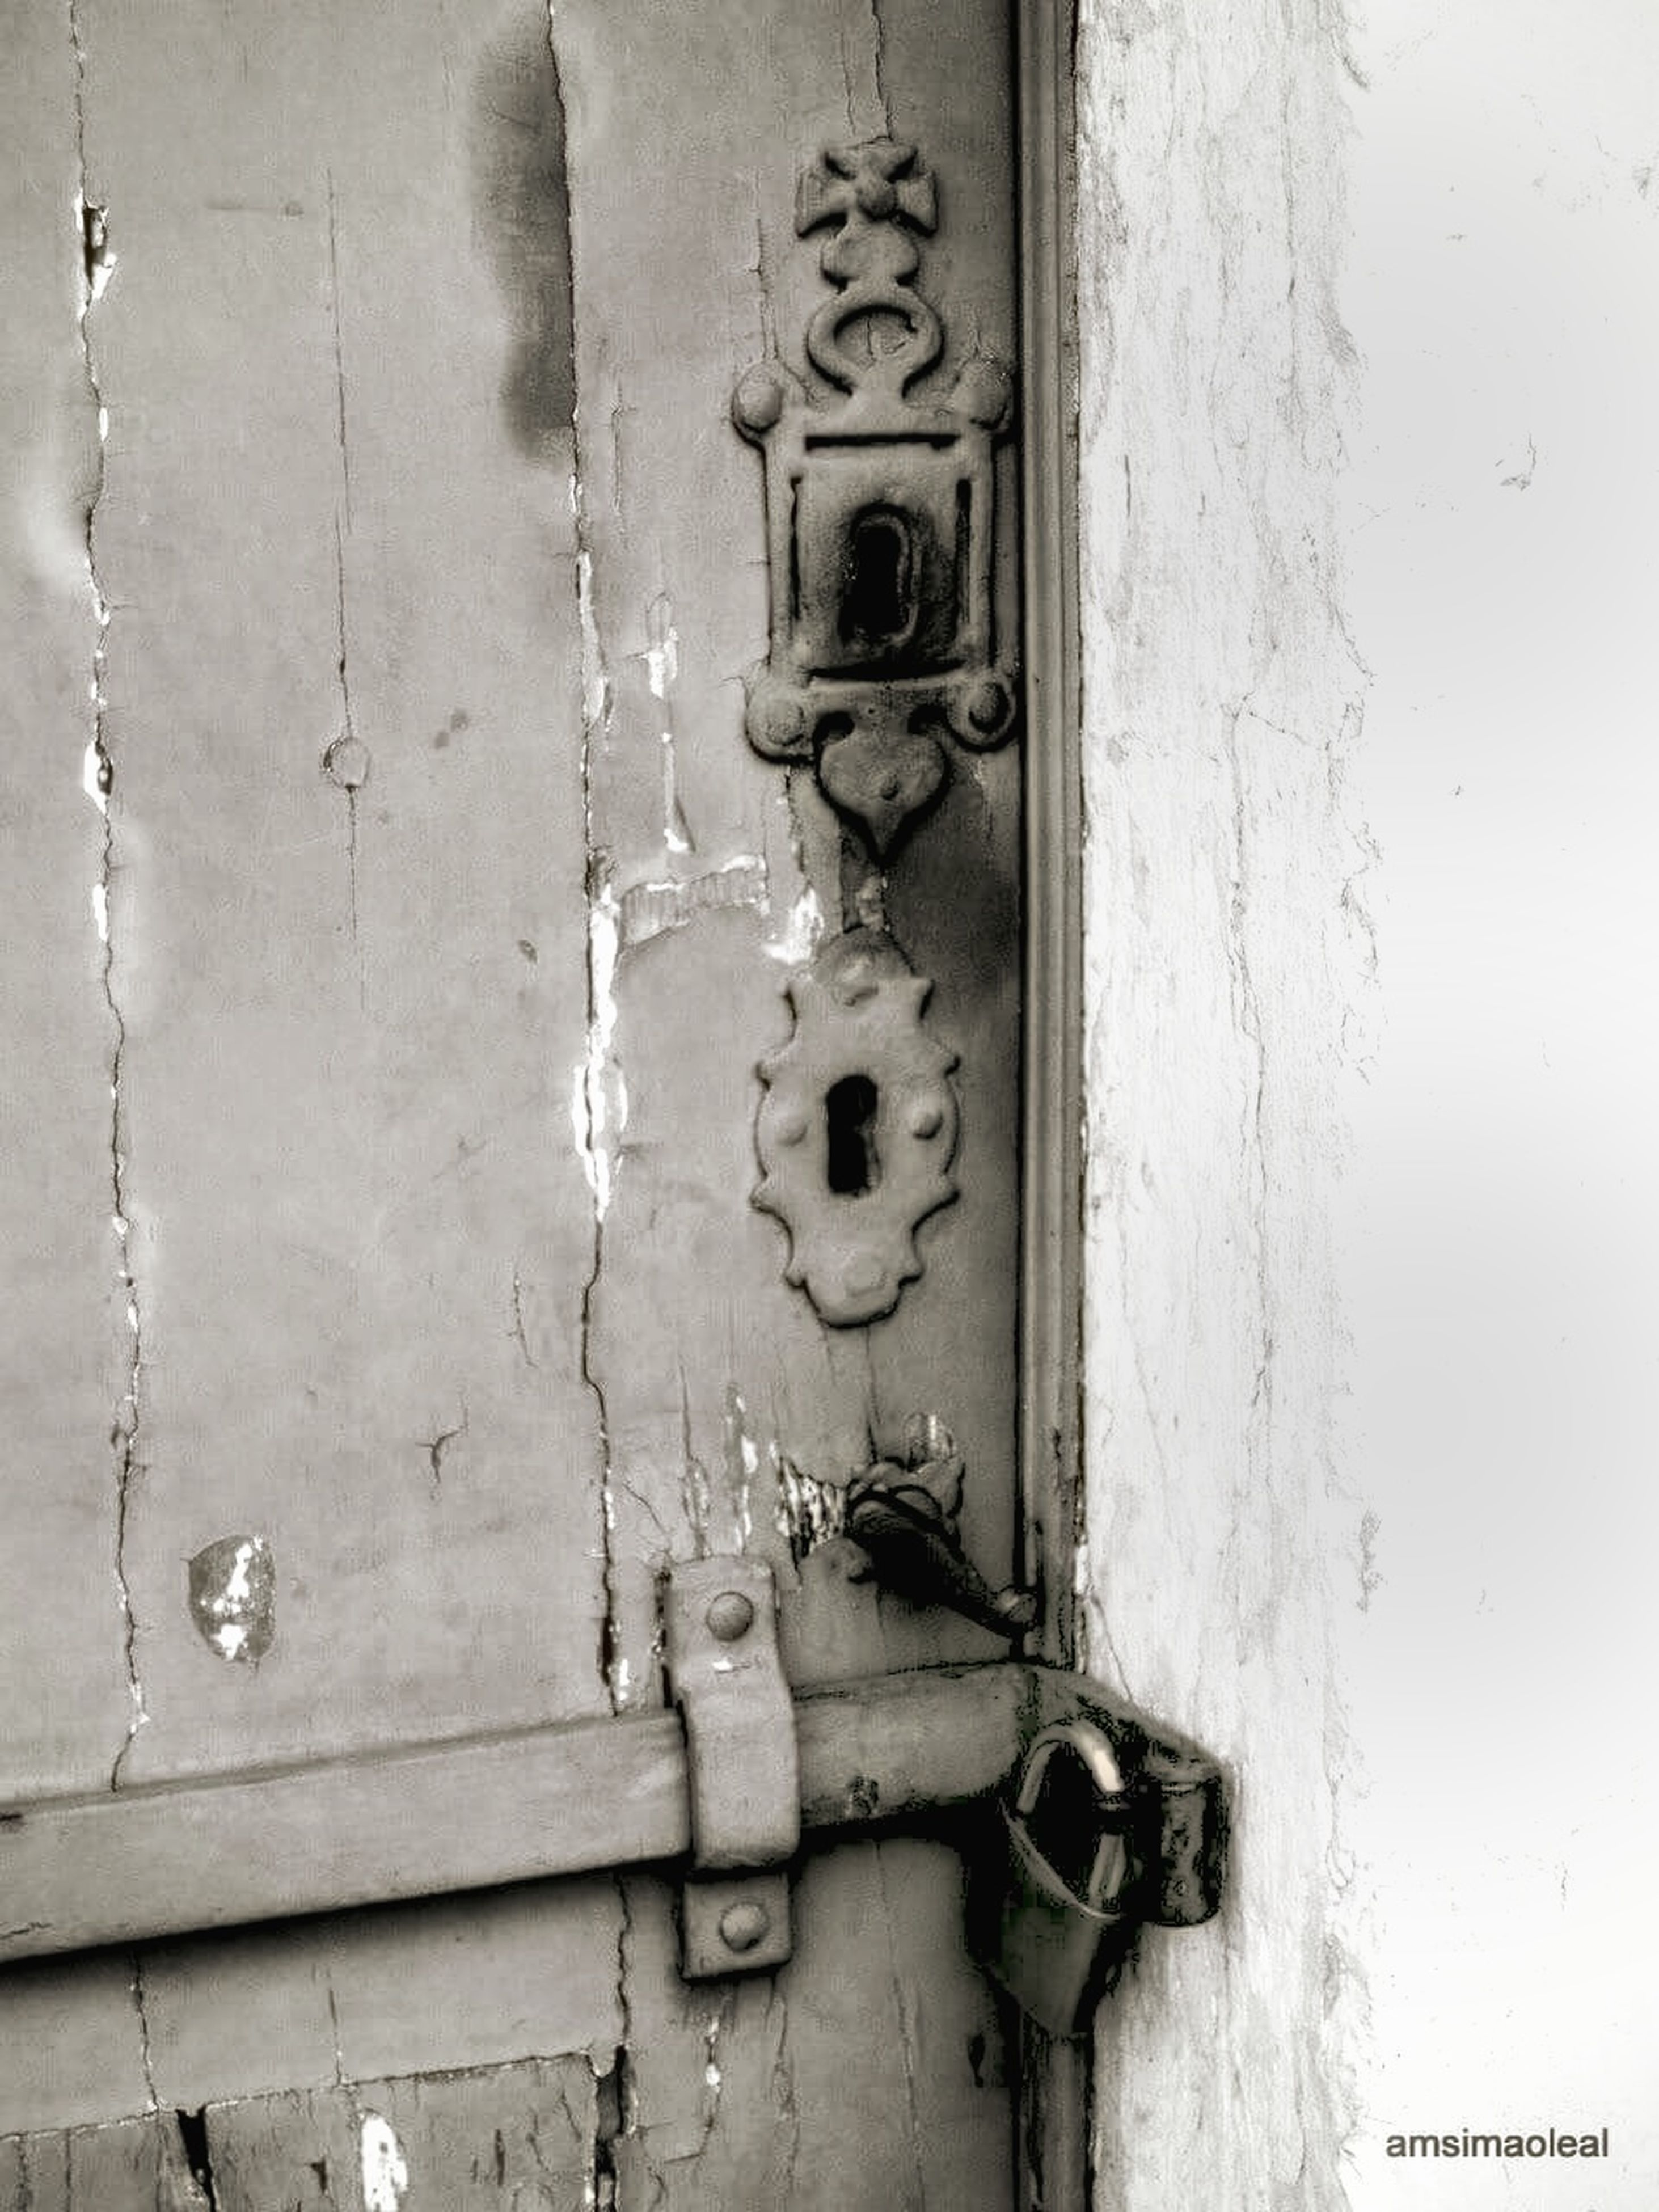 close-up, wall - building feature, man made object, full frame, weathered, no people